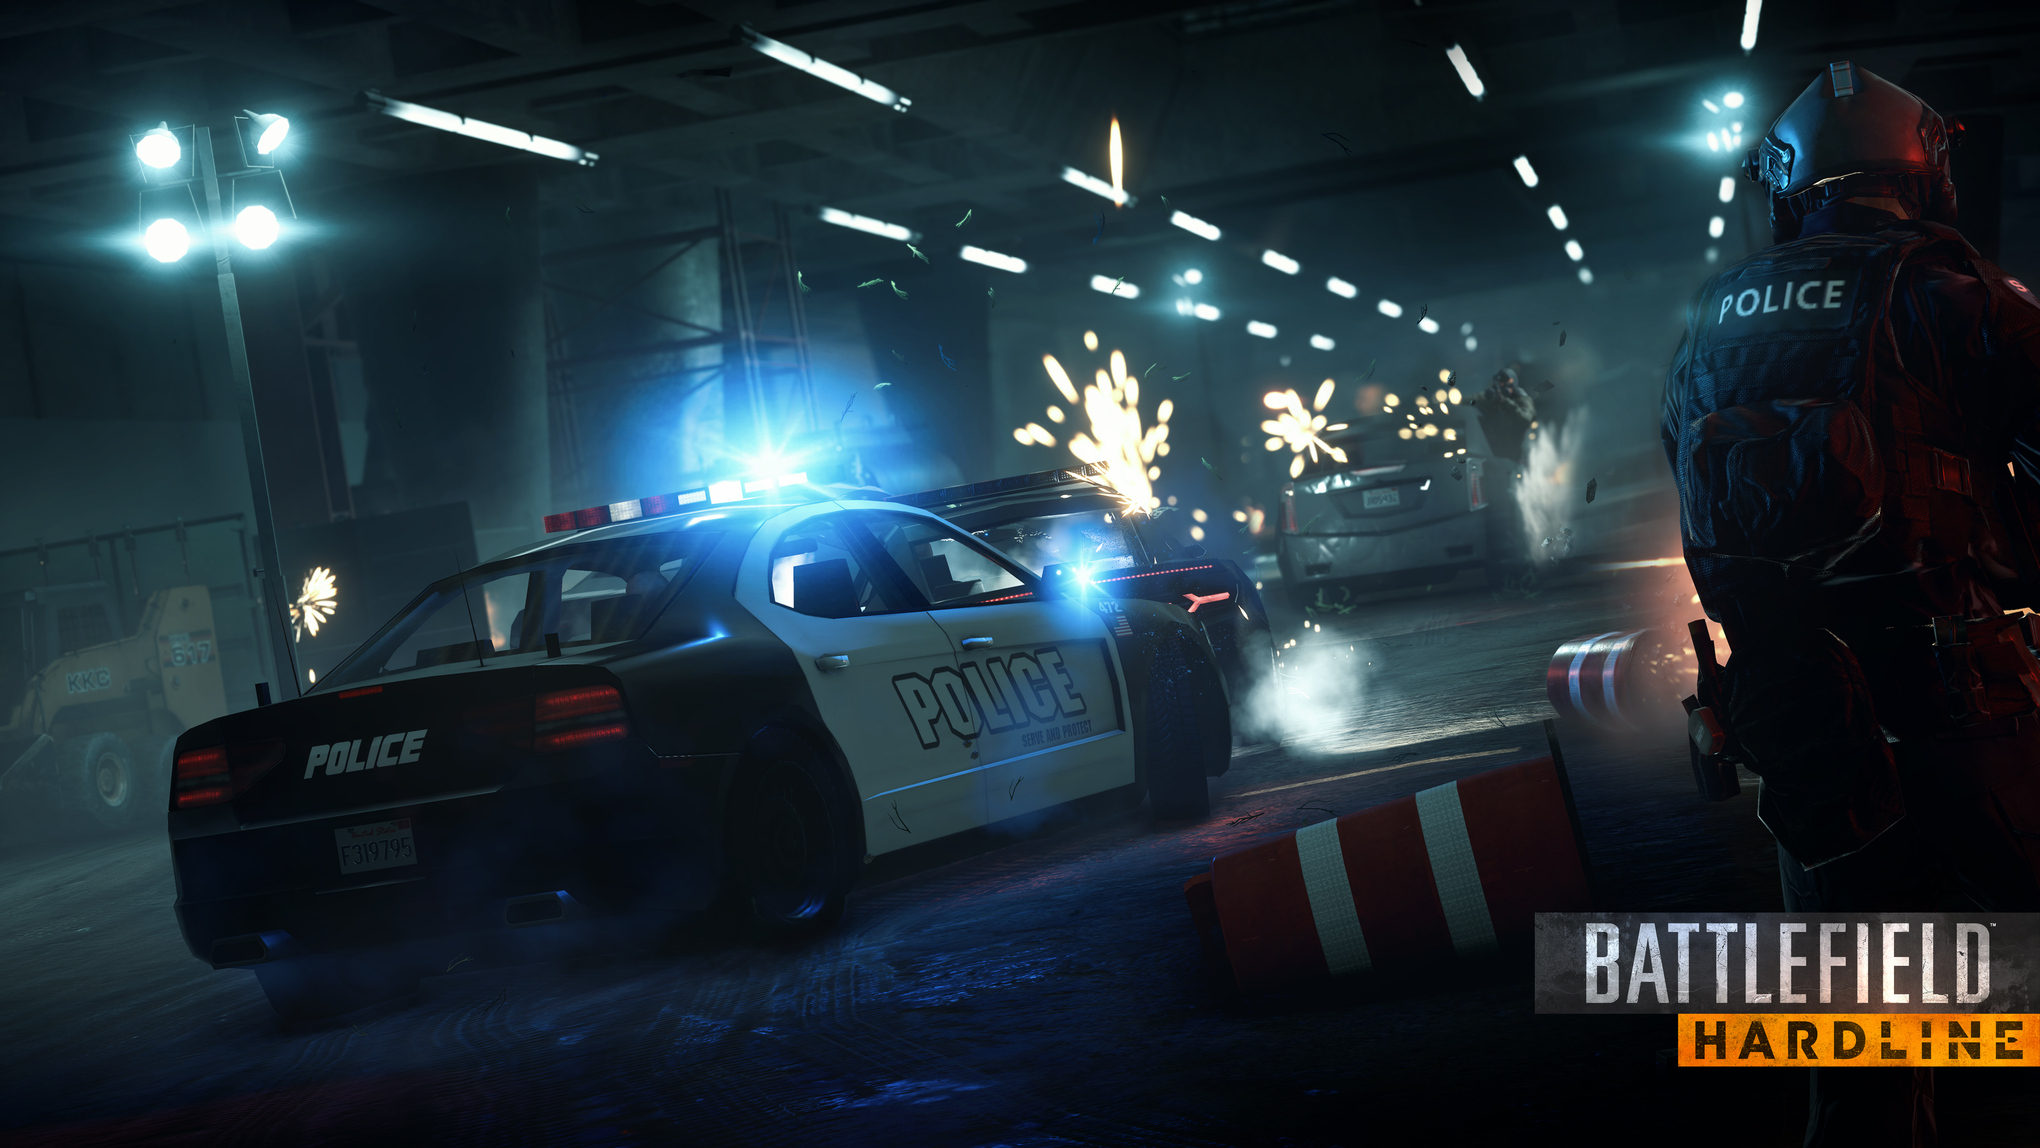 Battlefield Hardline's single-player tells the story of a good cop framed